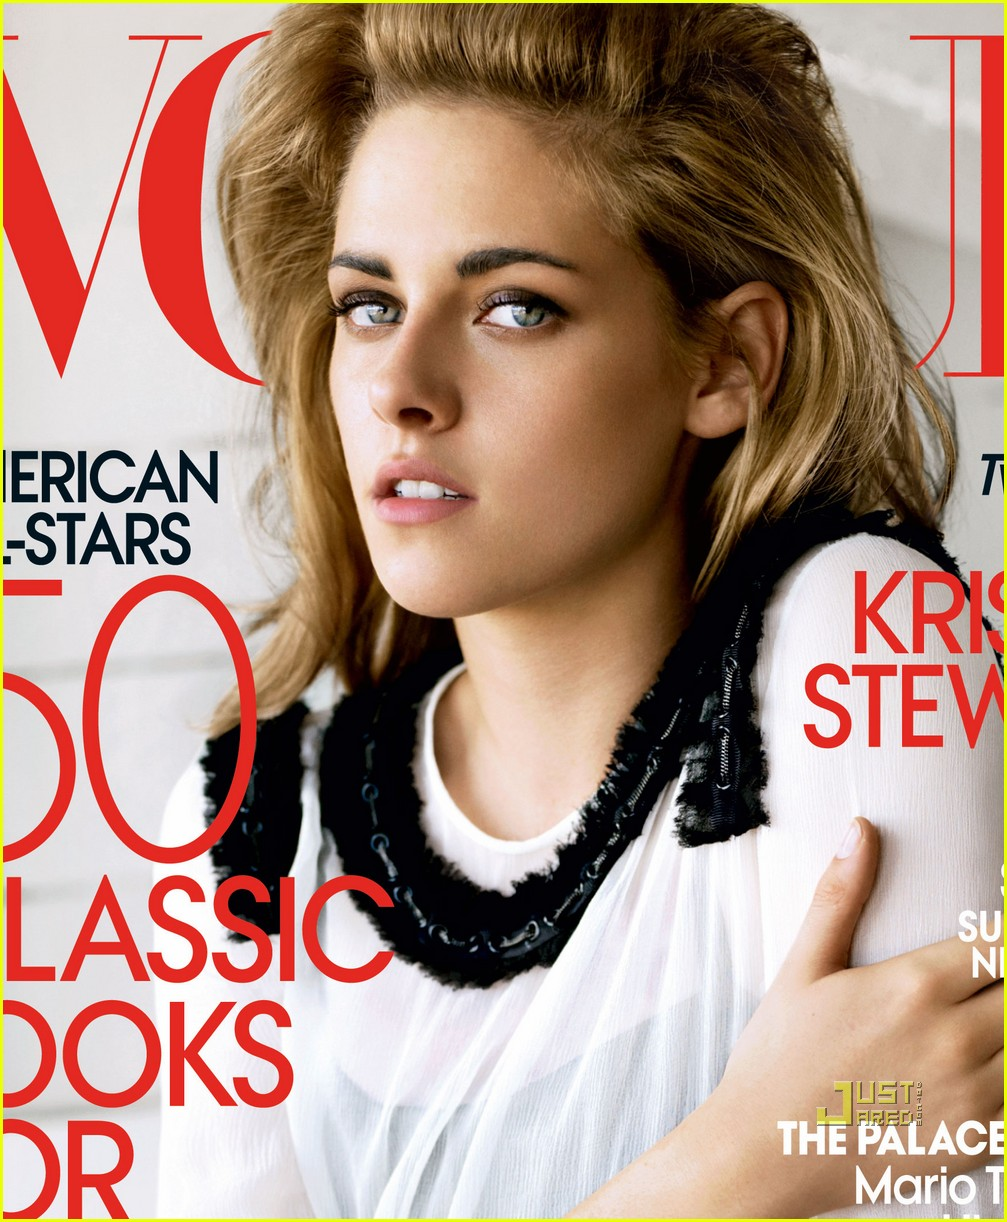 kristen stewart vogue february 2011 04